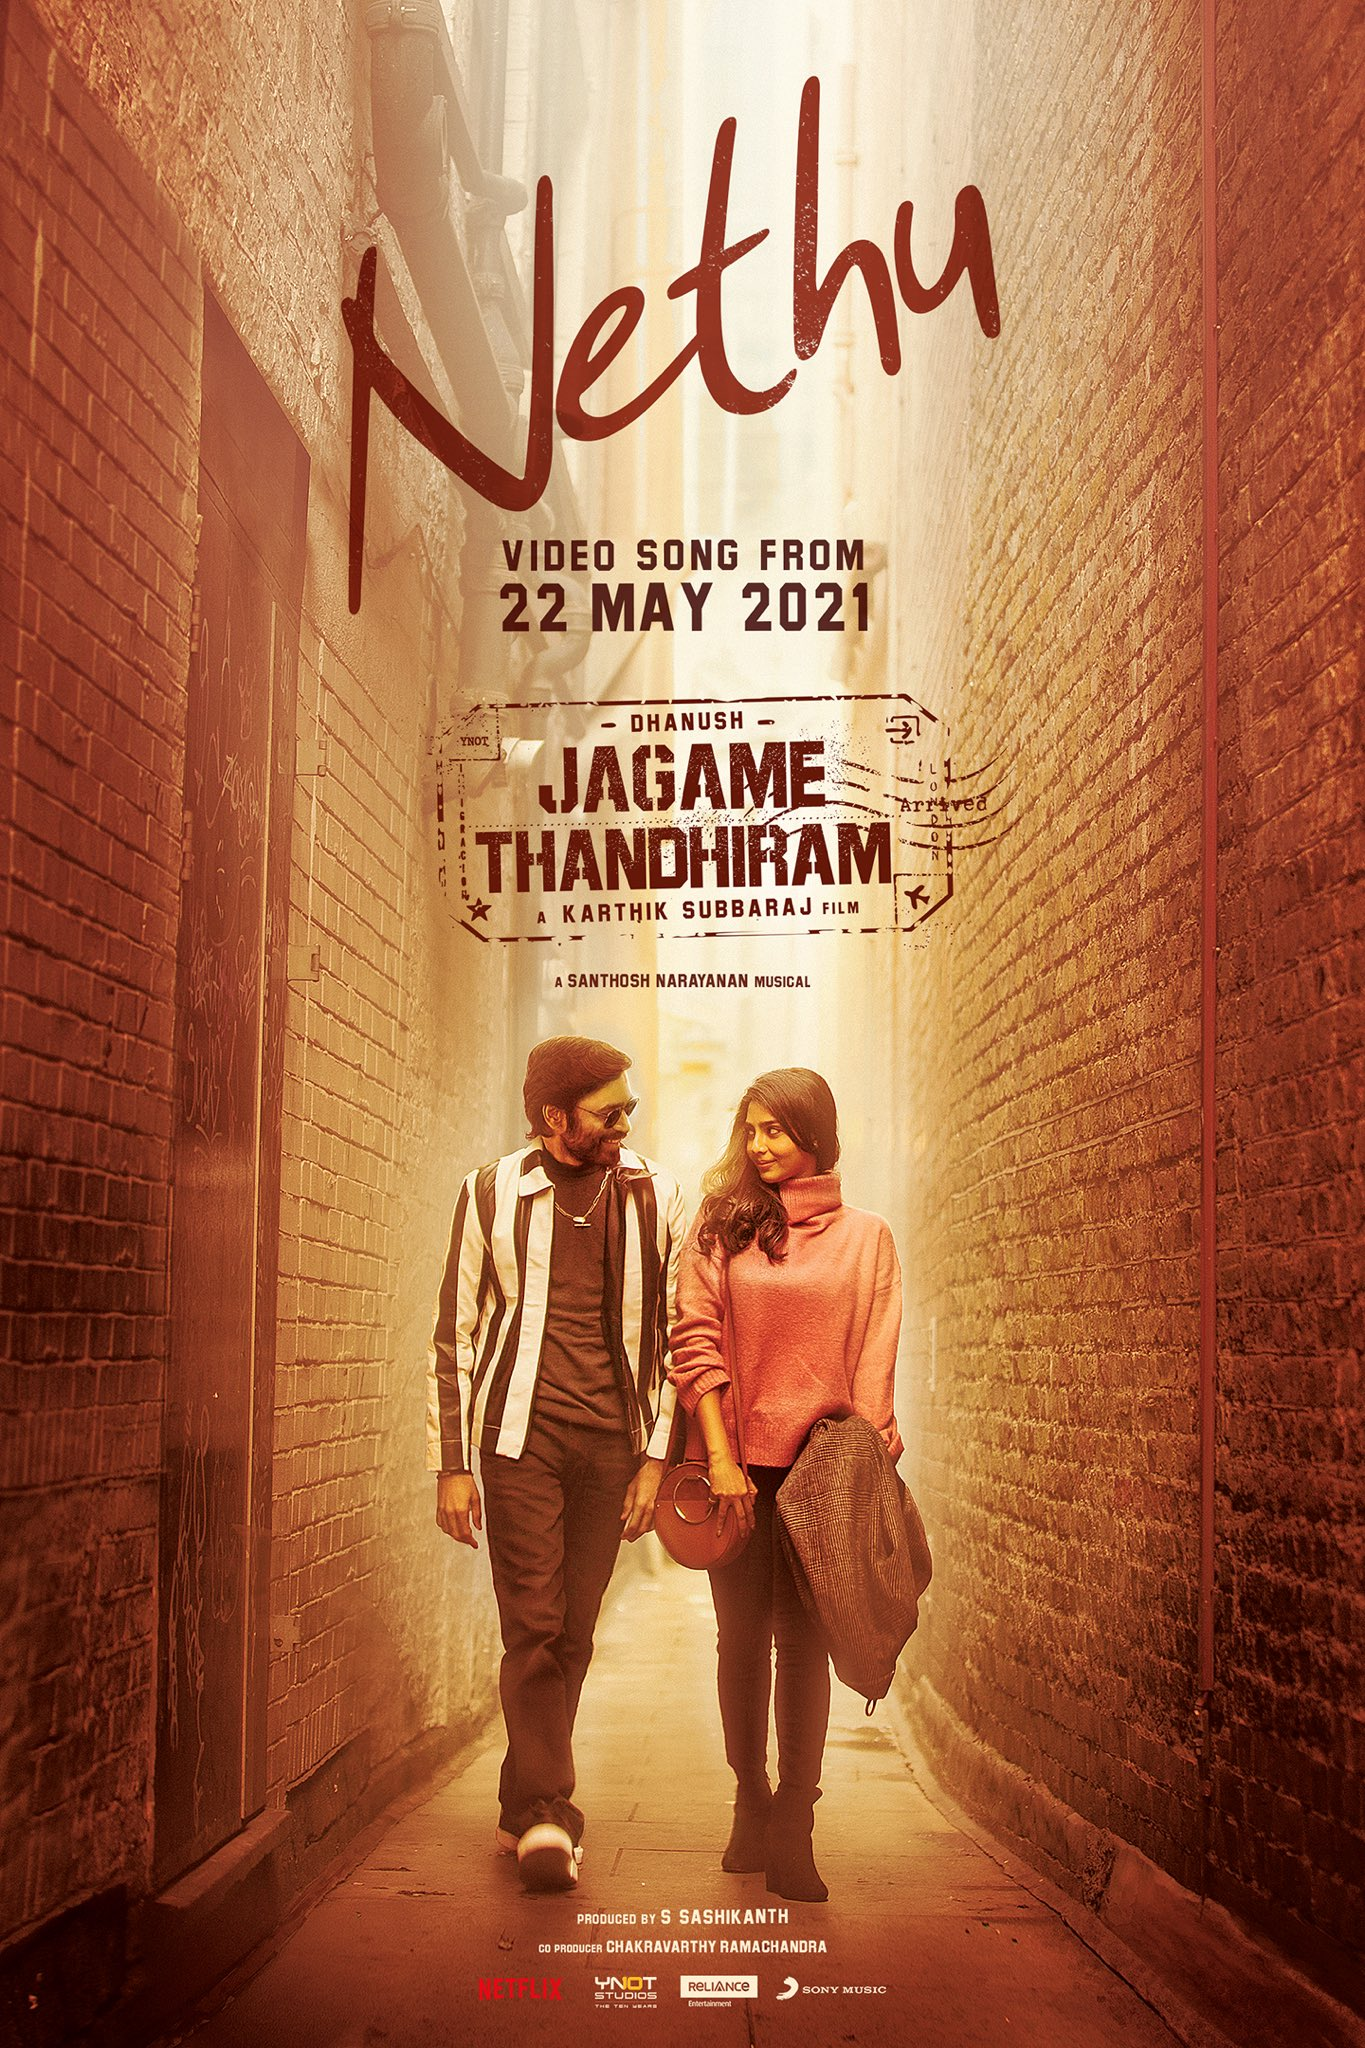 Jagame Thandhiram new video song Nethu to release on May 22